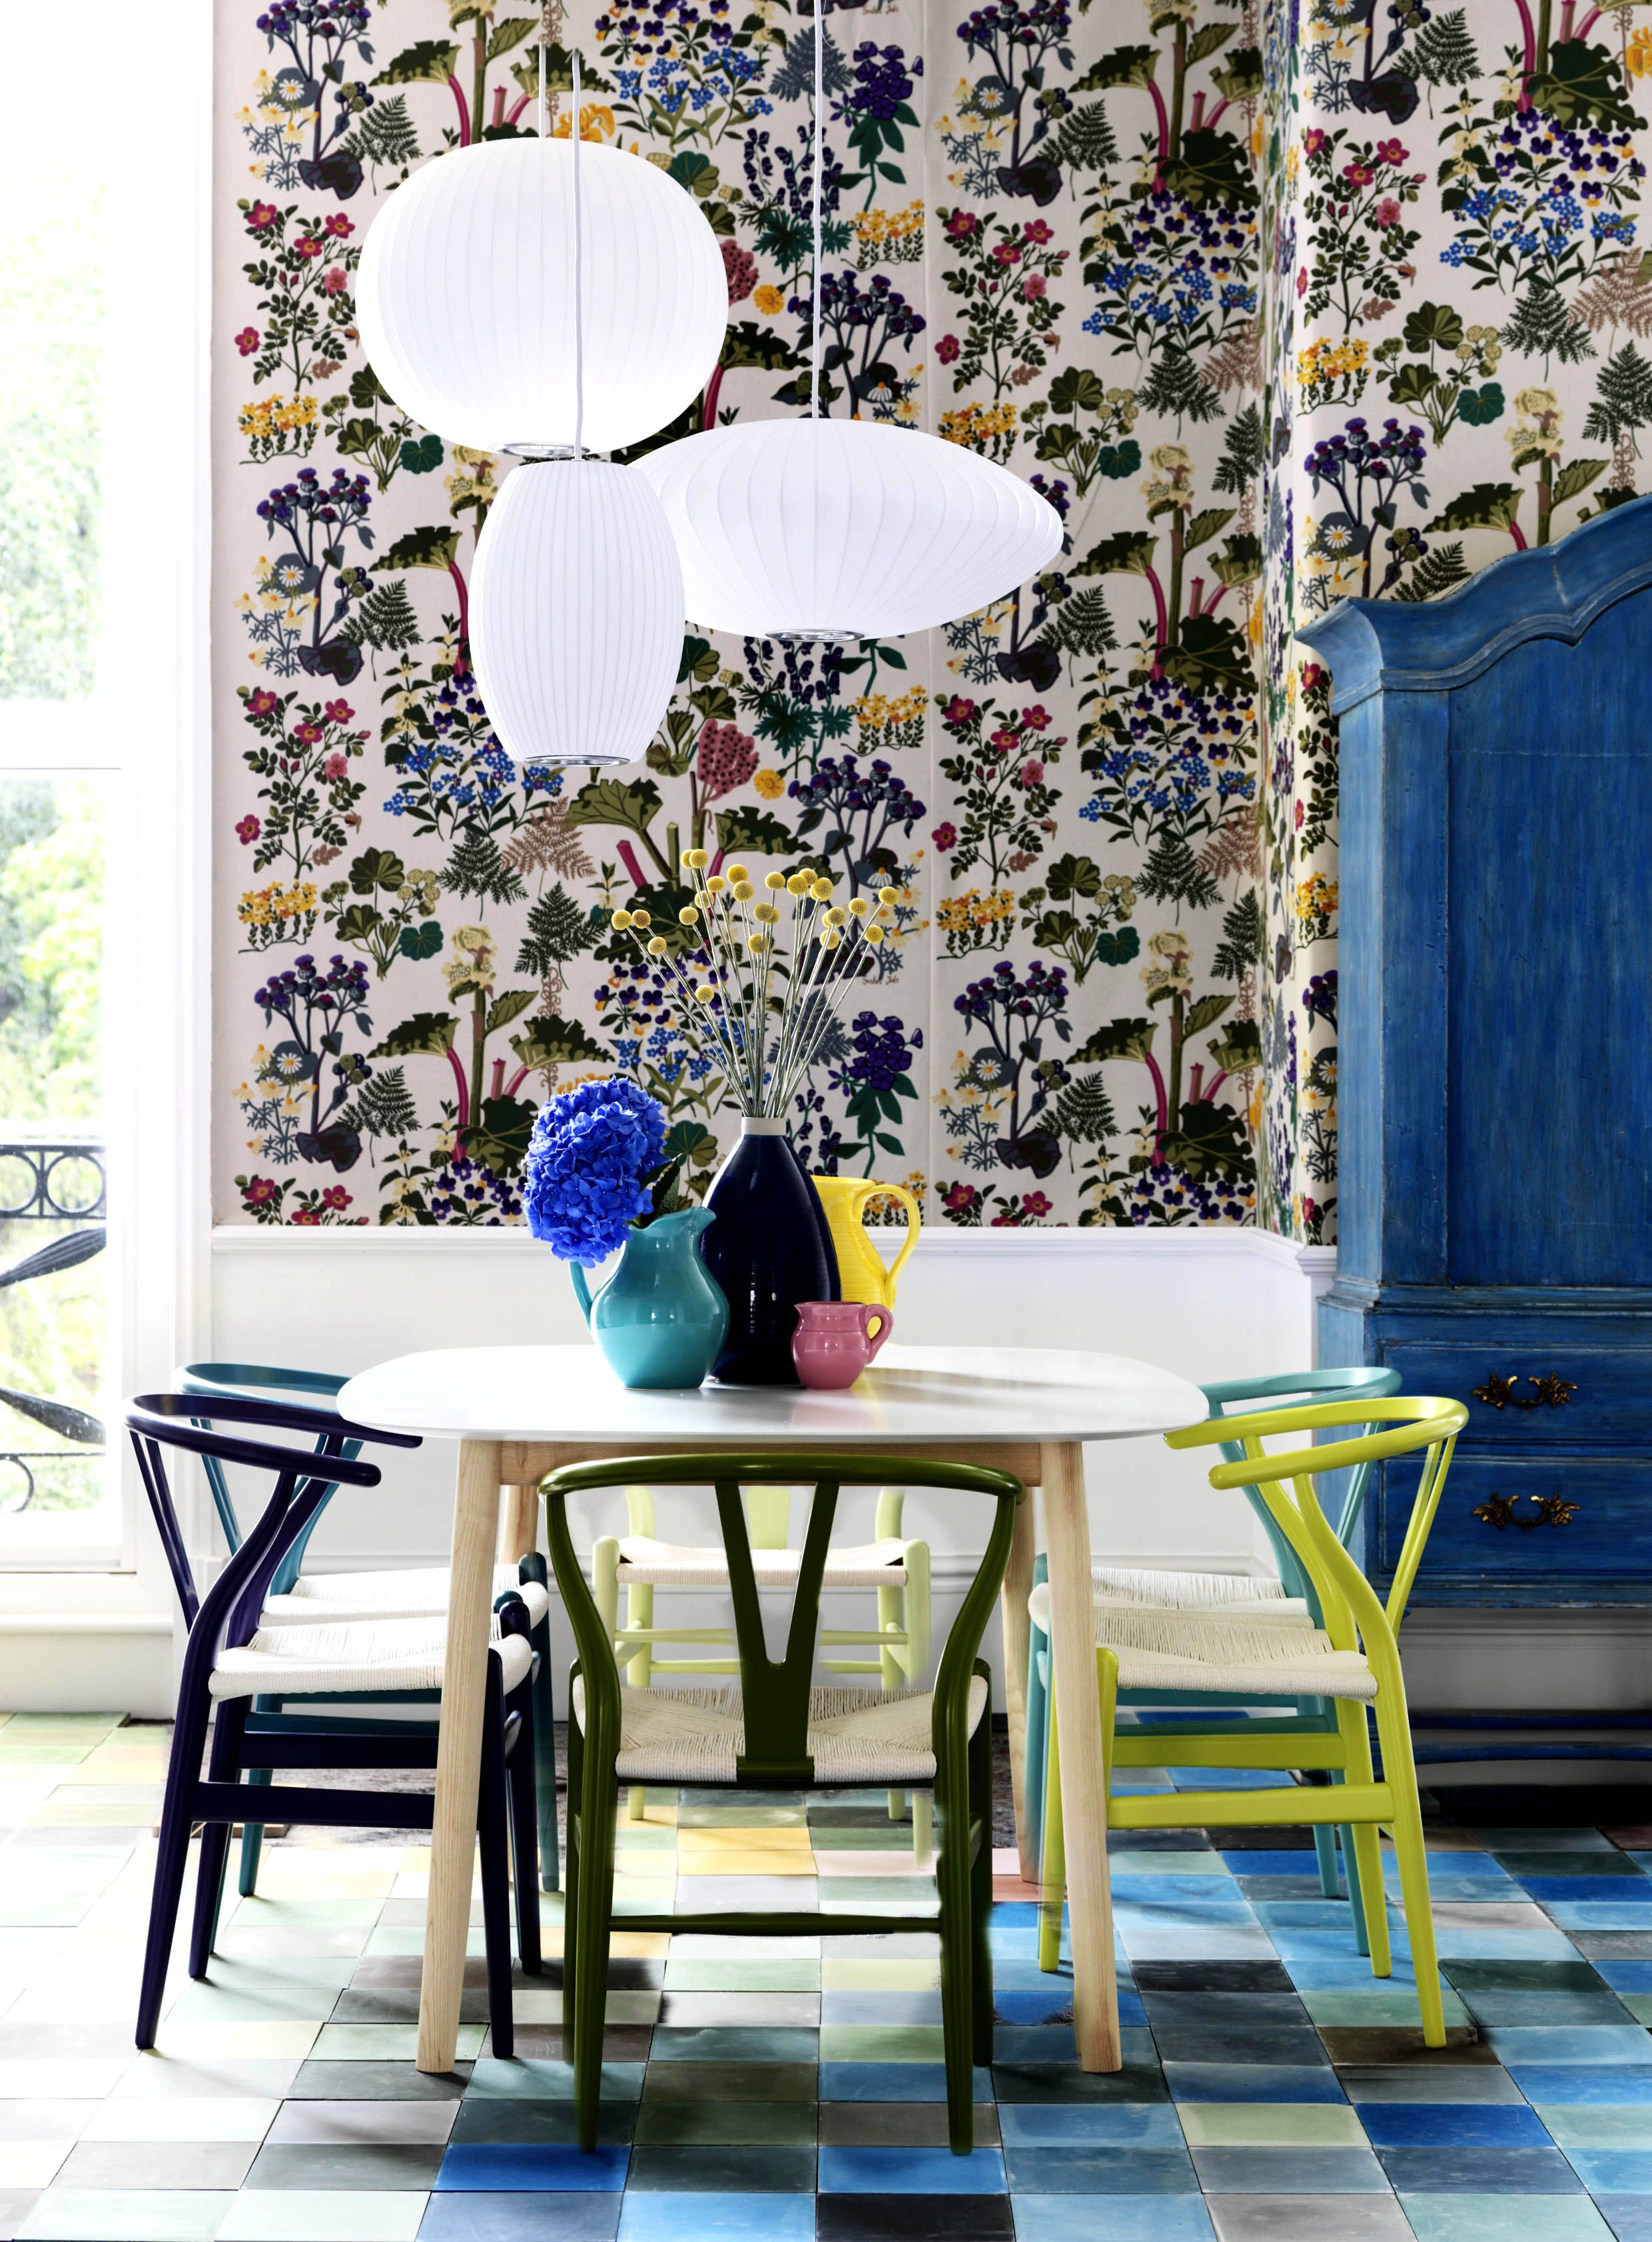 Photograph by Damian Russell for House & Garden. George Nelson lights and wall fabric 'Rhubarb' by Jobs Hantryck.